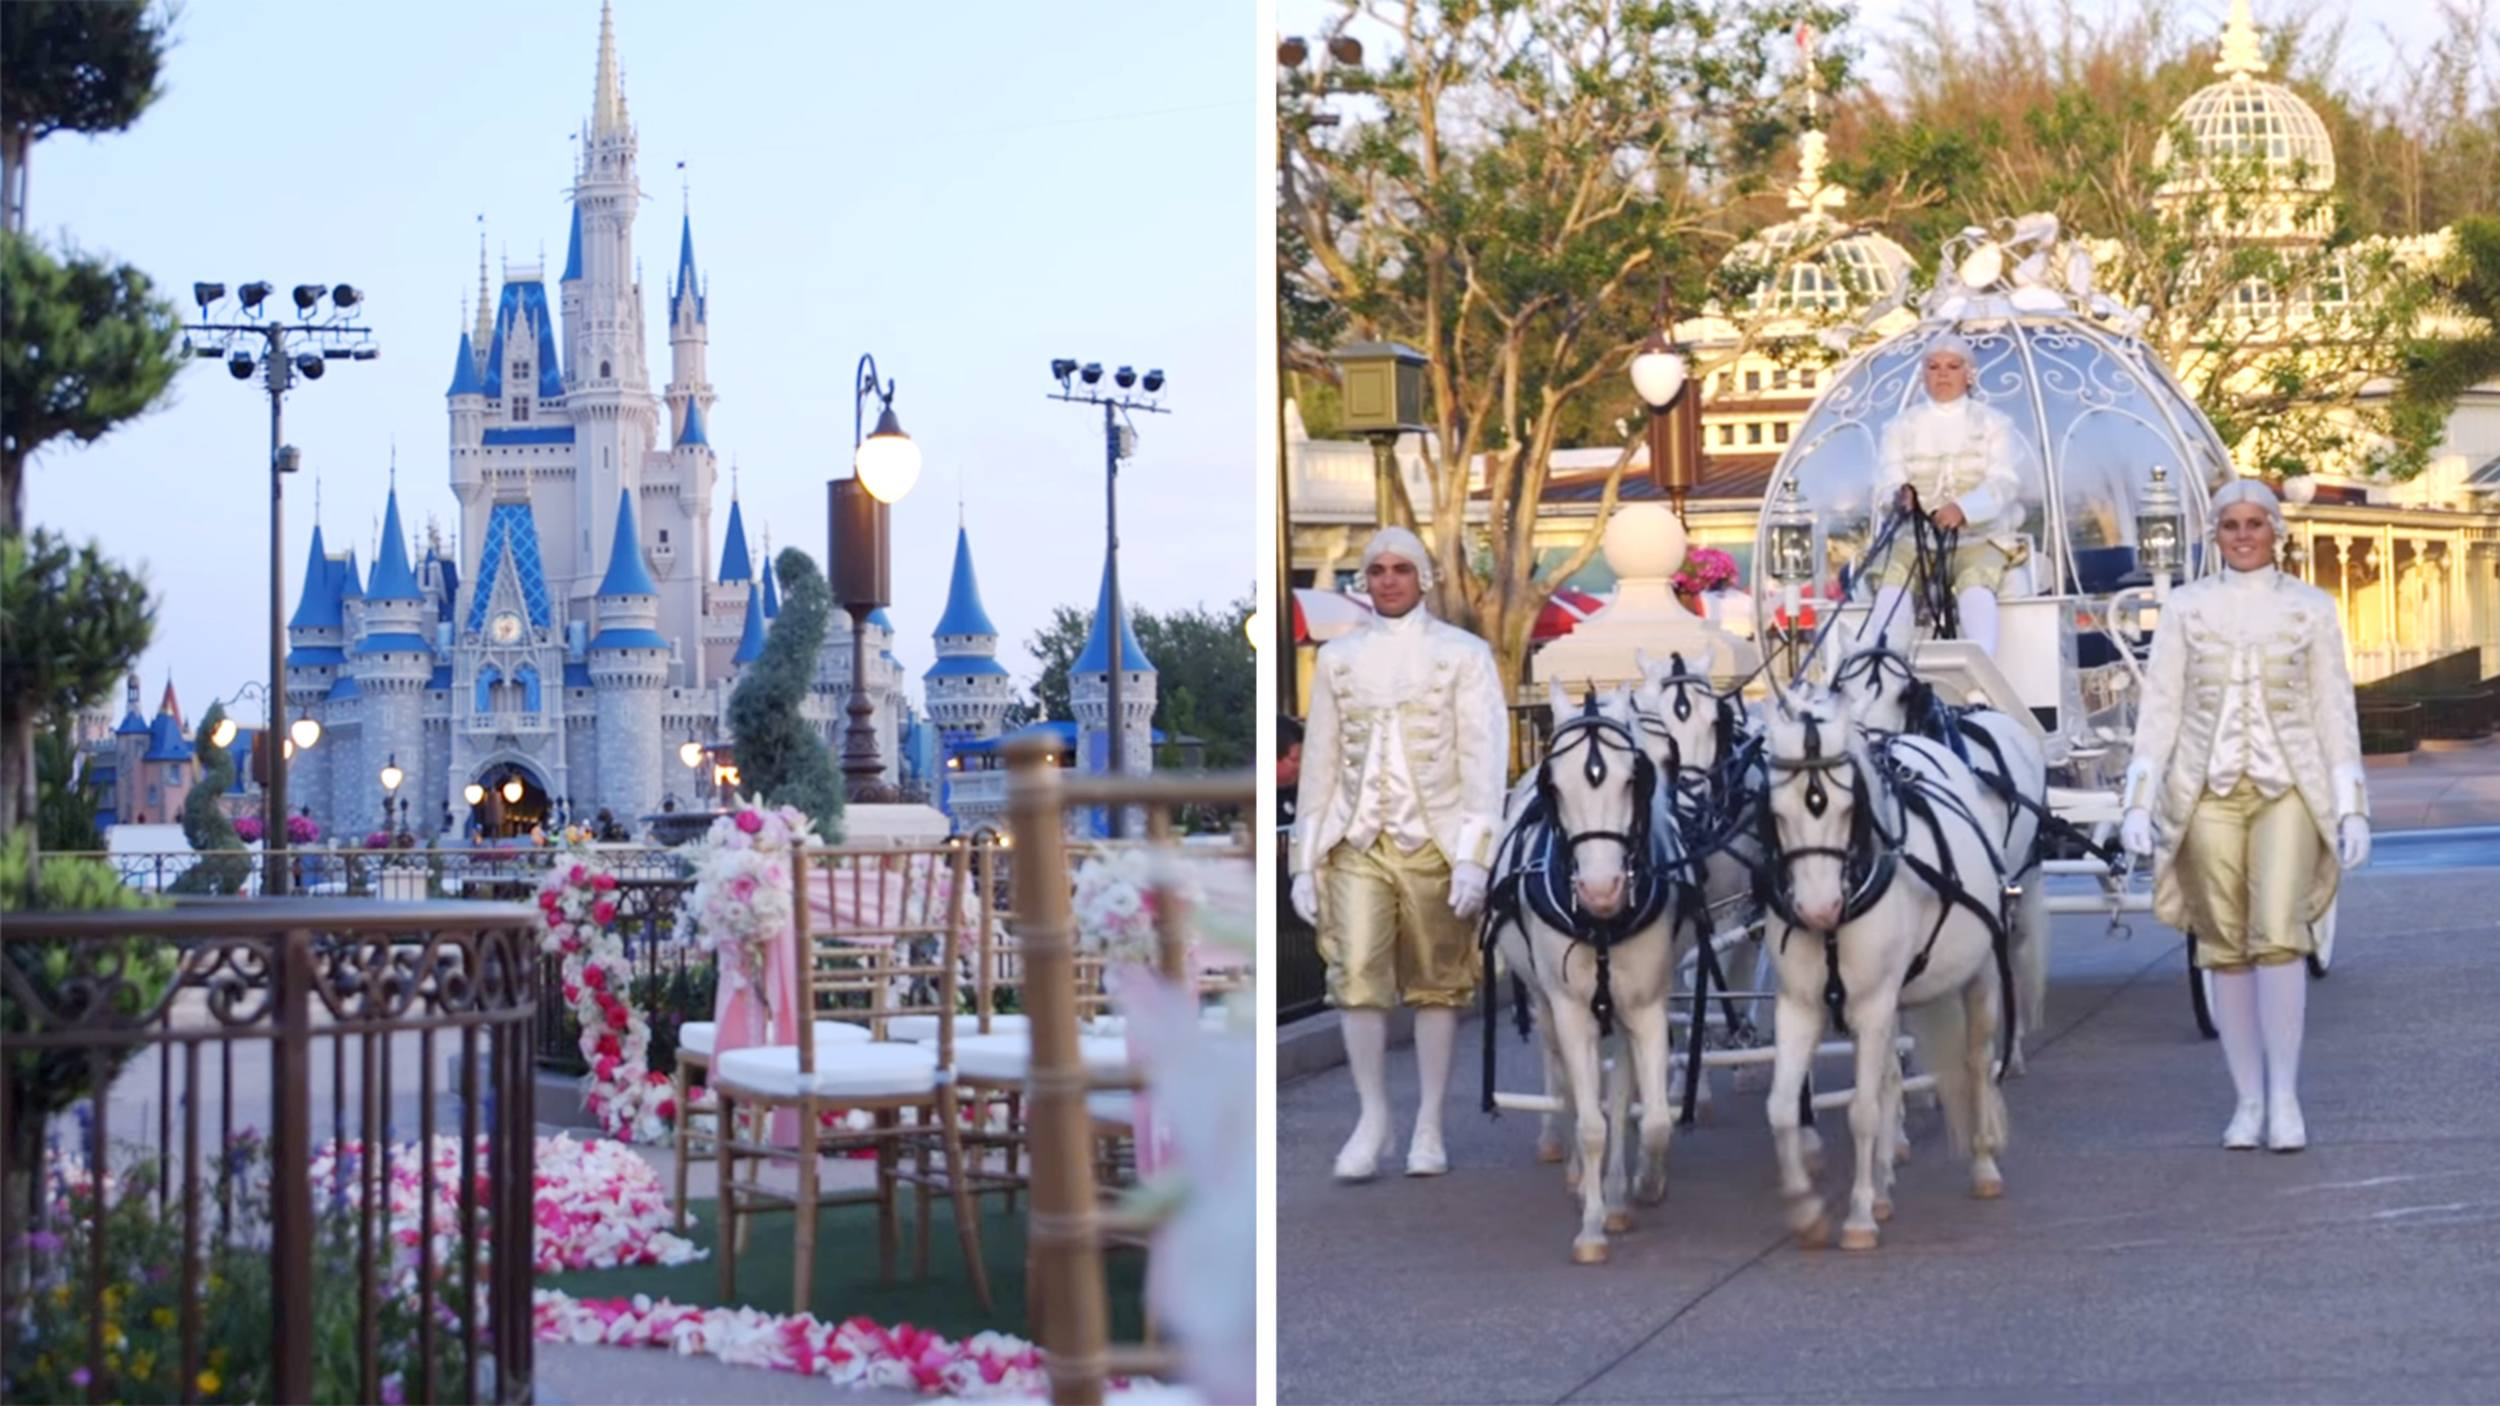 Wedding At Disney And Disney Will Handle Every Aspect Of The Wedding